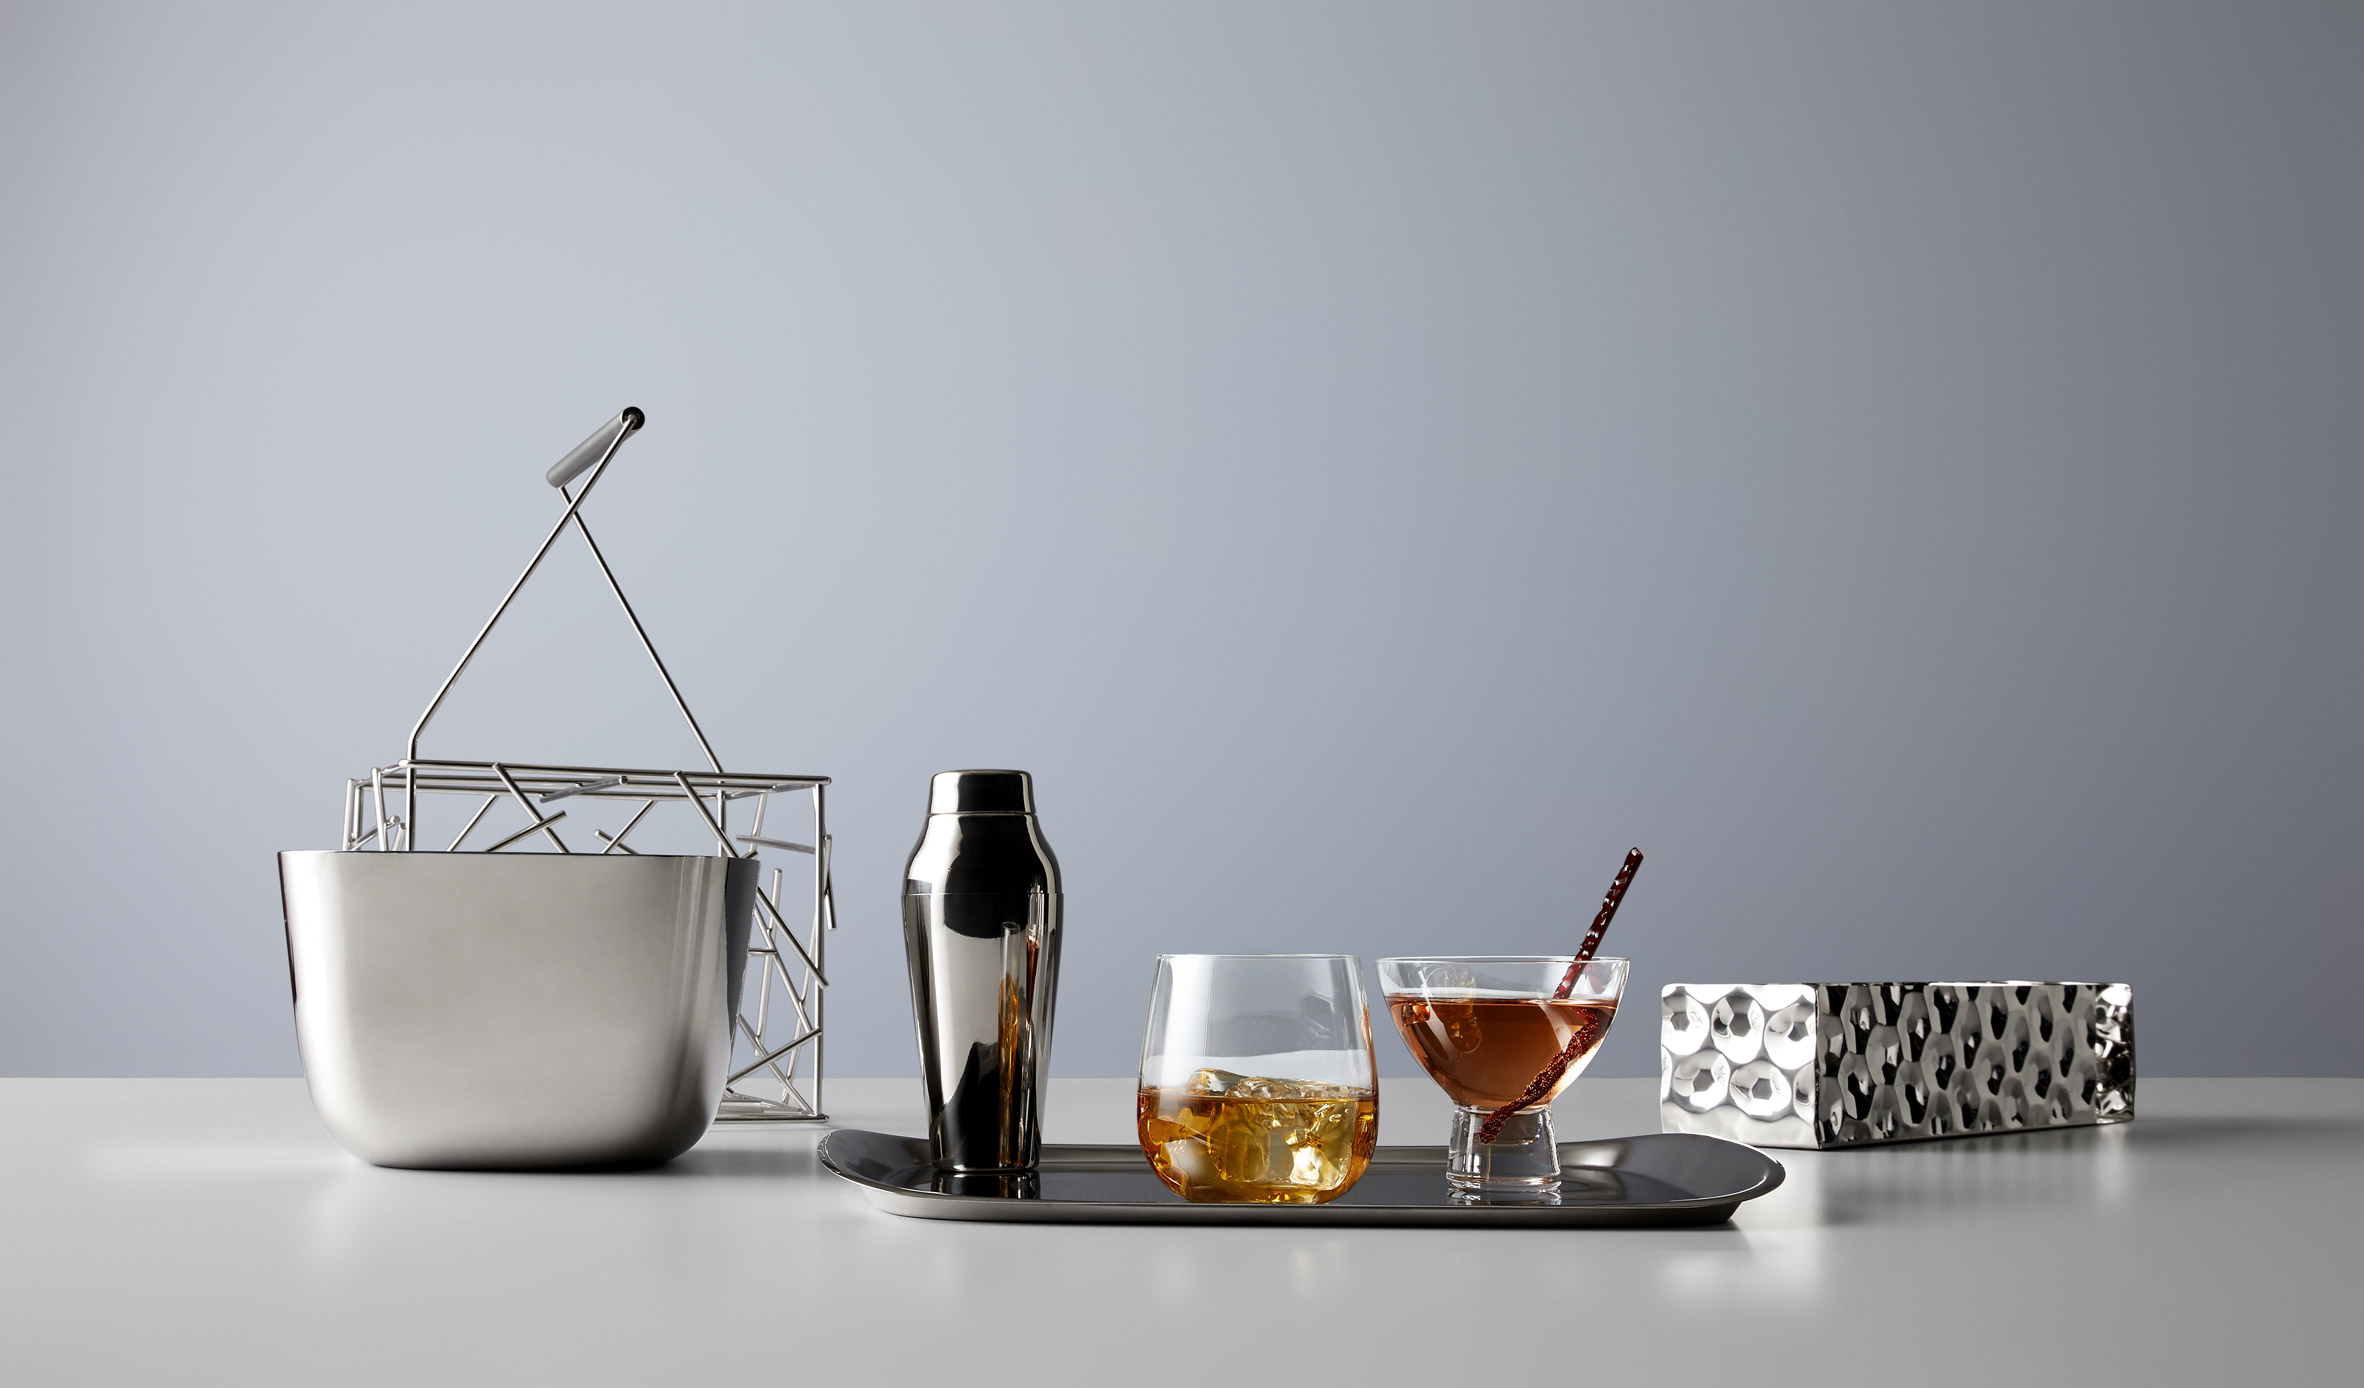 Alessi taps Urquiola, Bouroullecs, Campanas and more for Delta Airlines in-flight serviceware